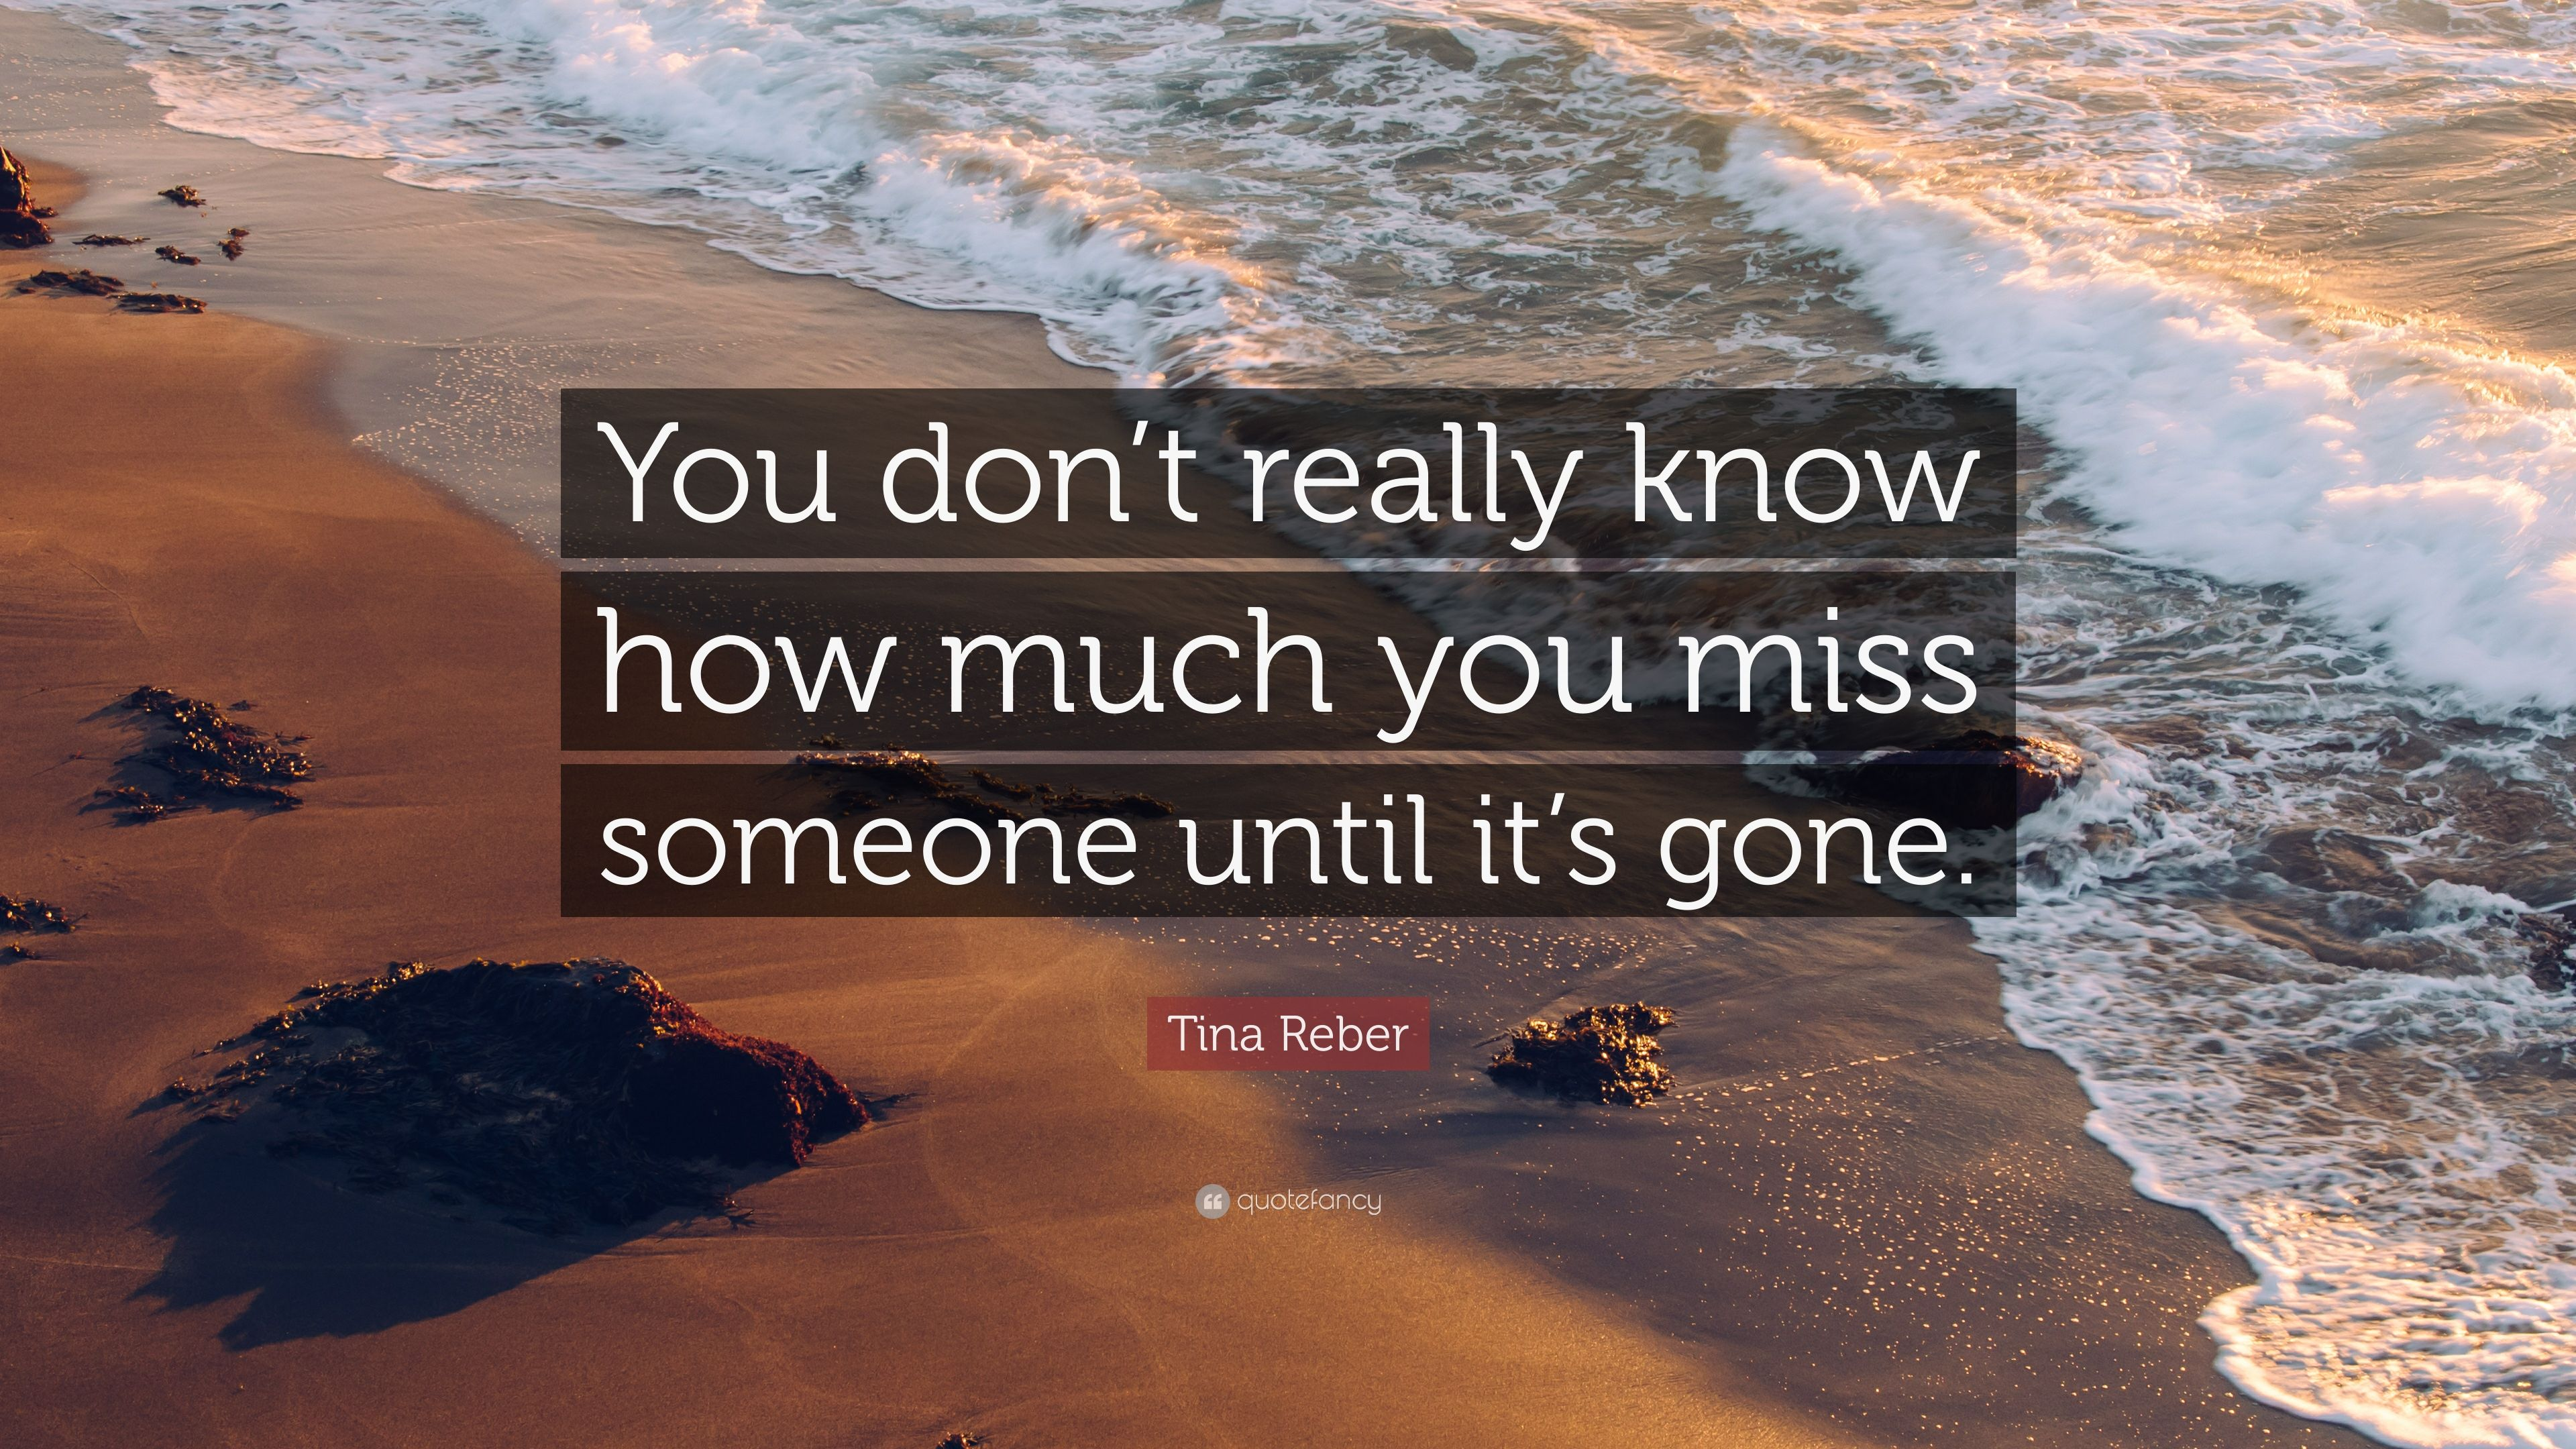 Tina Reber Quote: You dont really know how much you miss